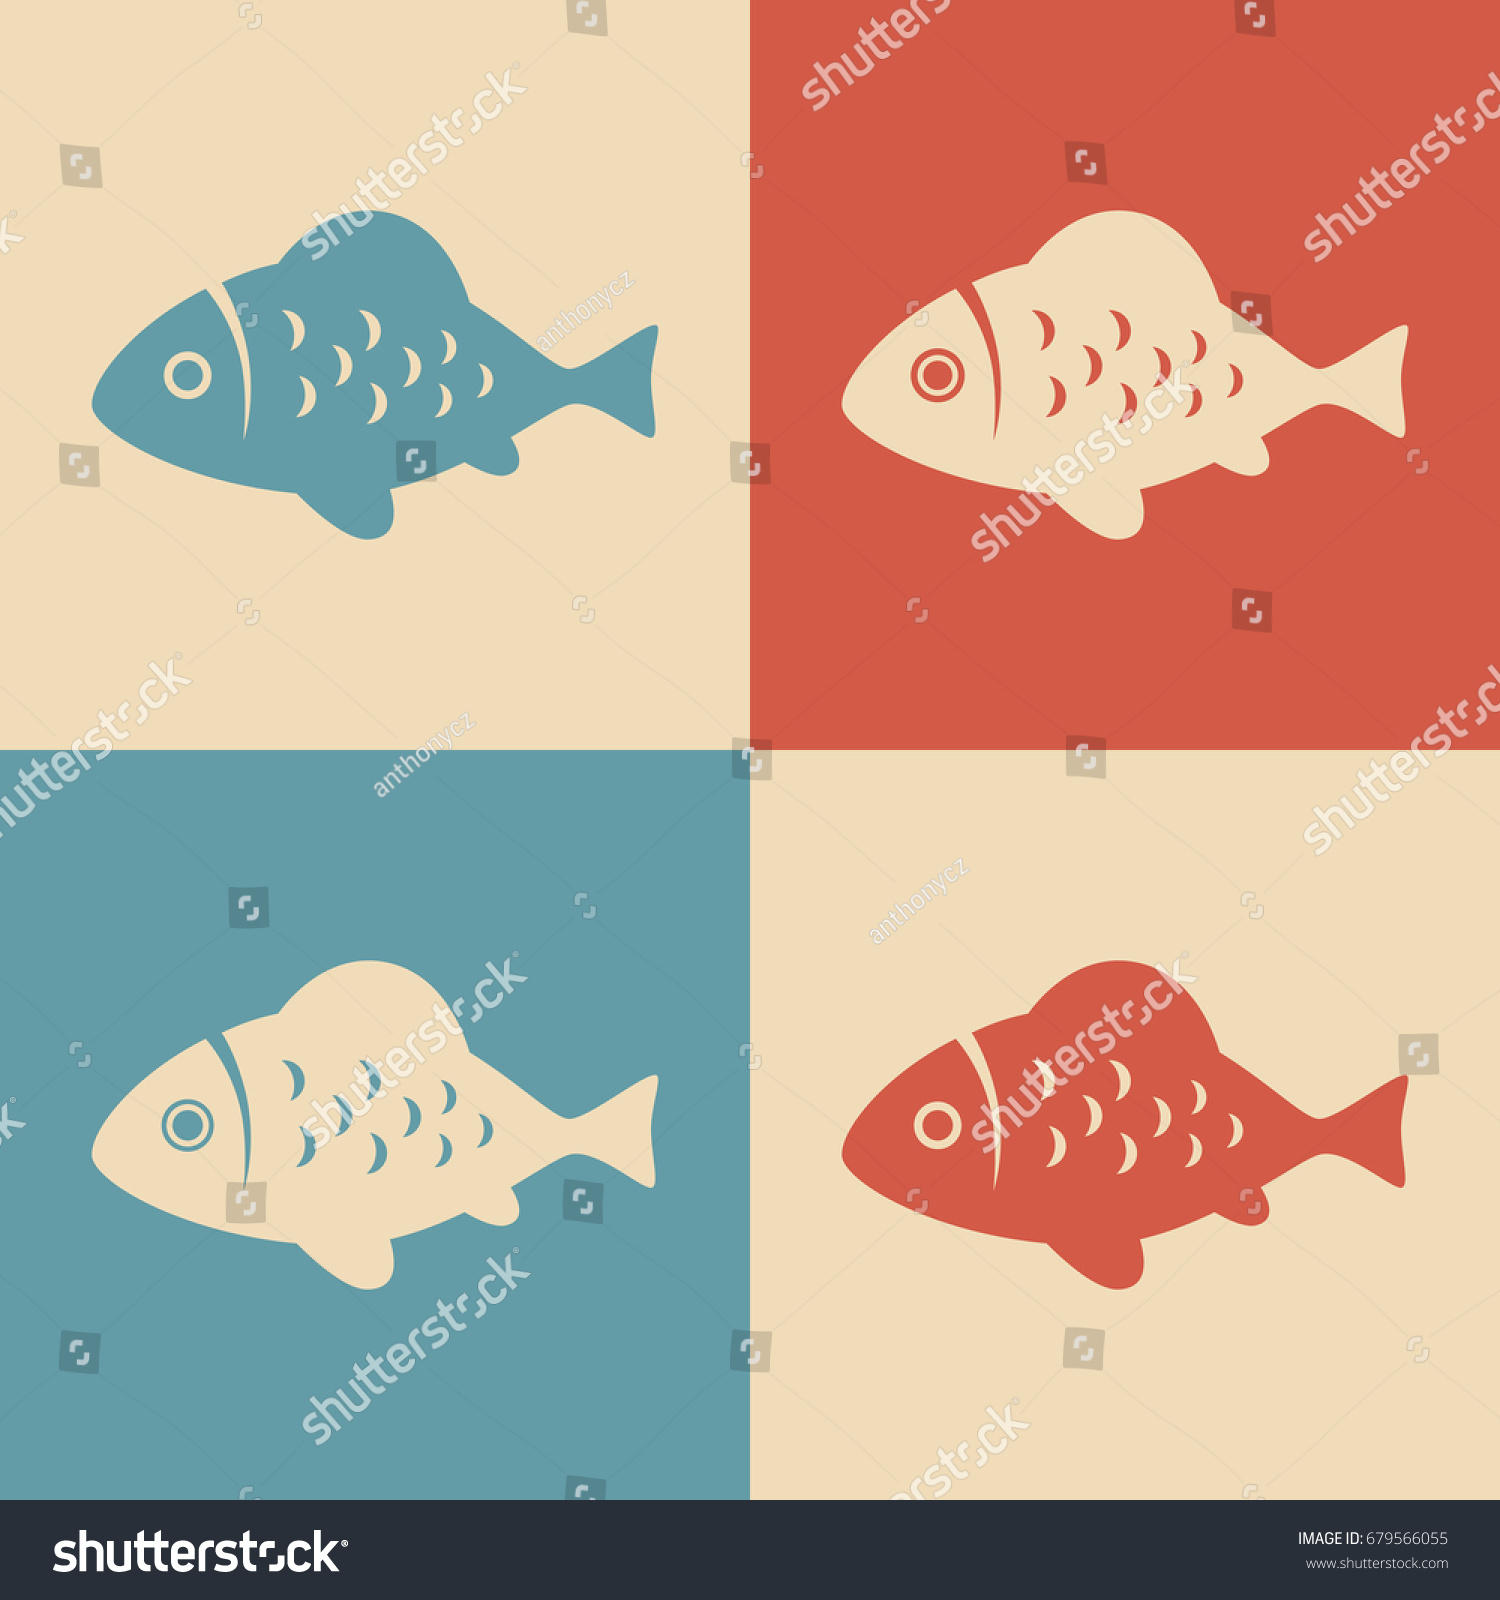 Fish Vector Icon Retro Colors Stock Vector 679566055 - Shutterstock